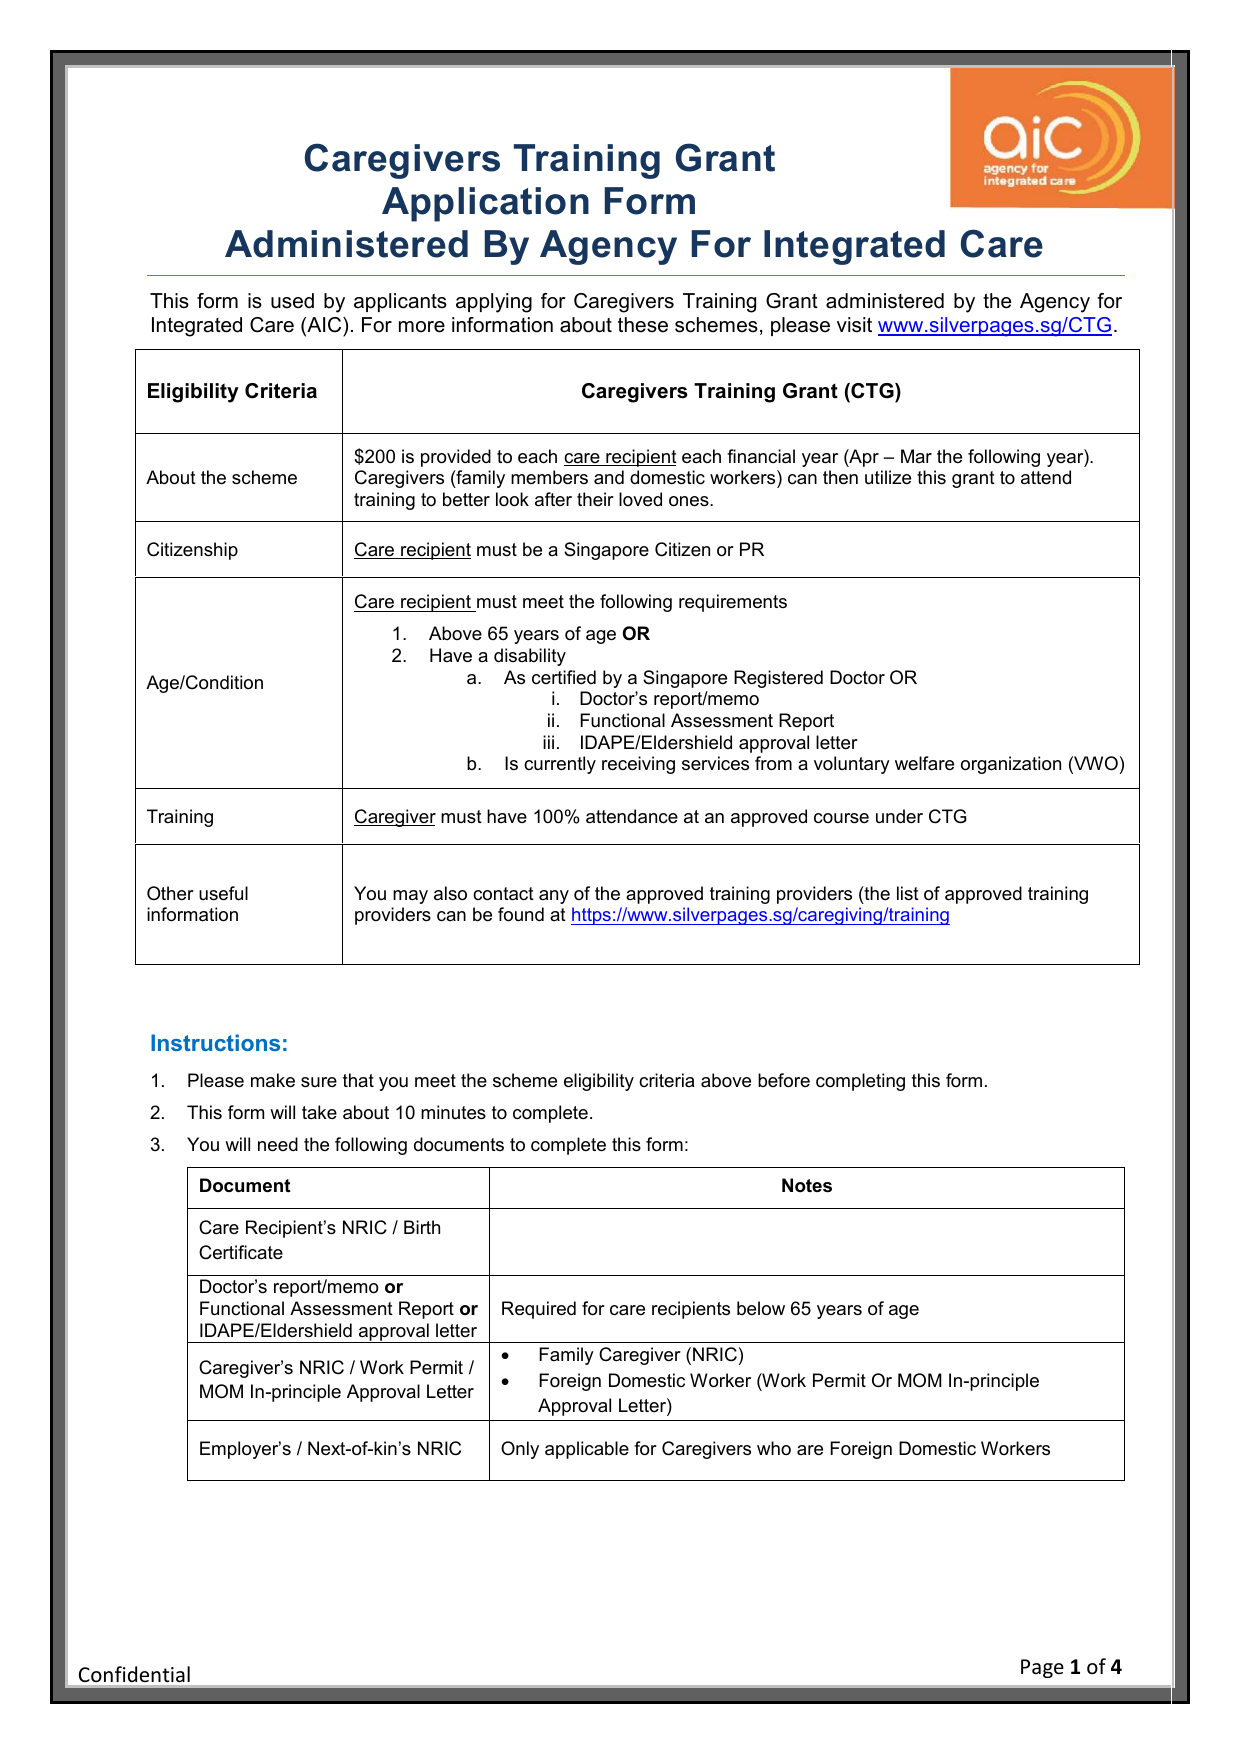 Caregivers Training Grant Application Form Administered By